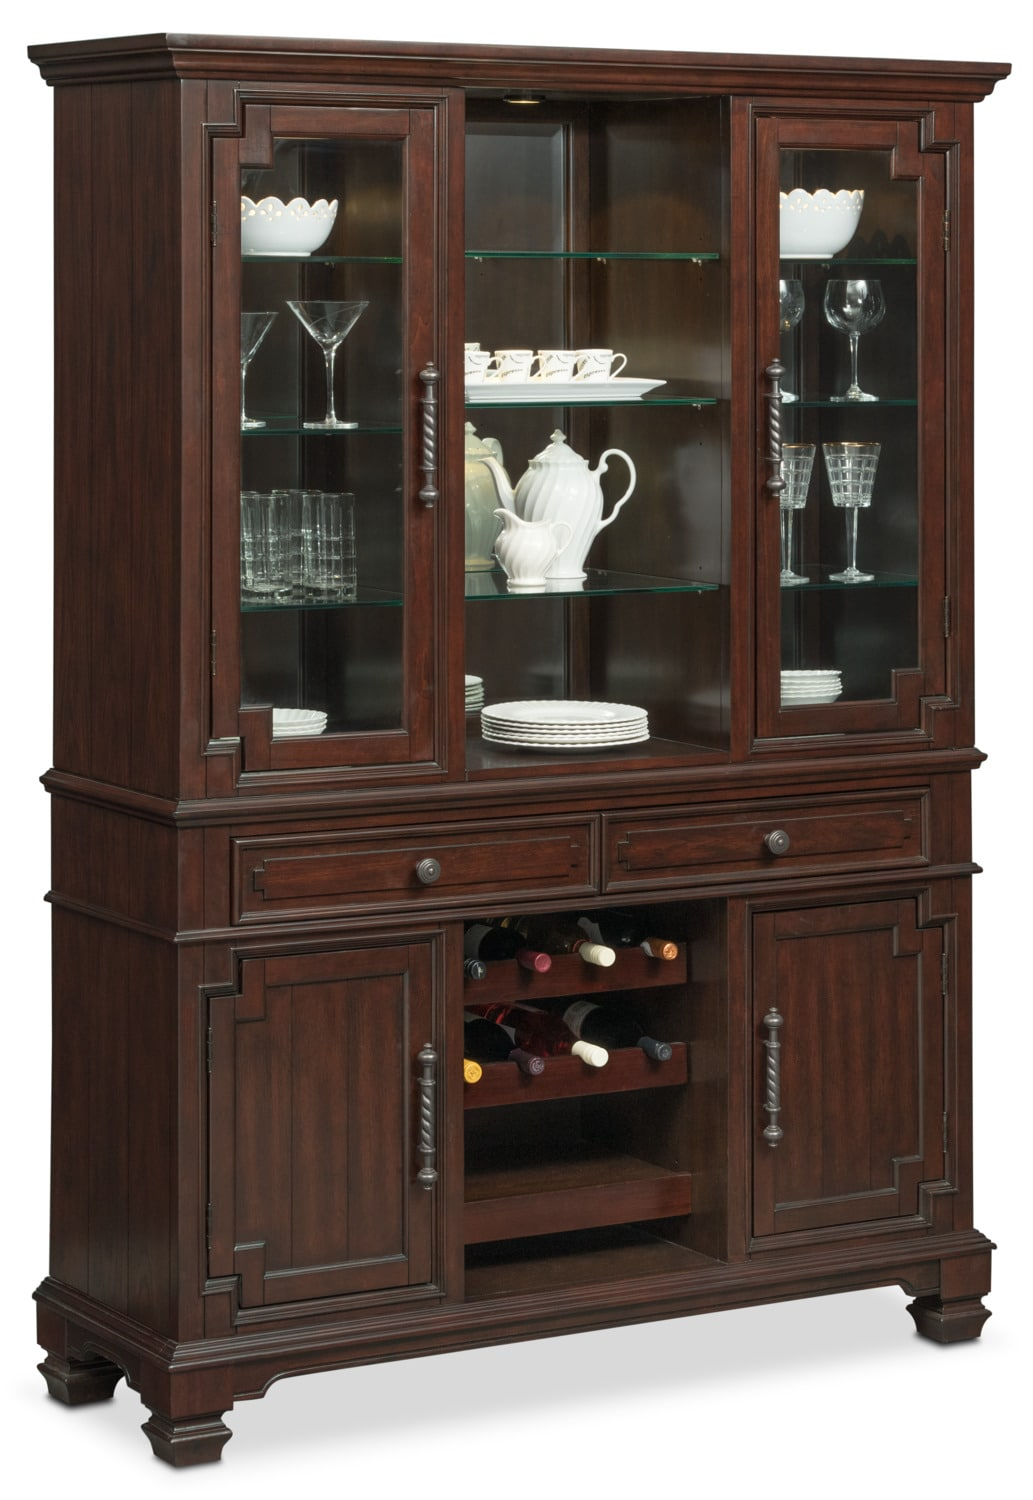 Dining Room Furniture - Vienna Buffet and Hutch - Merlot